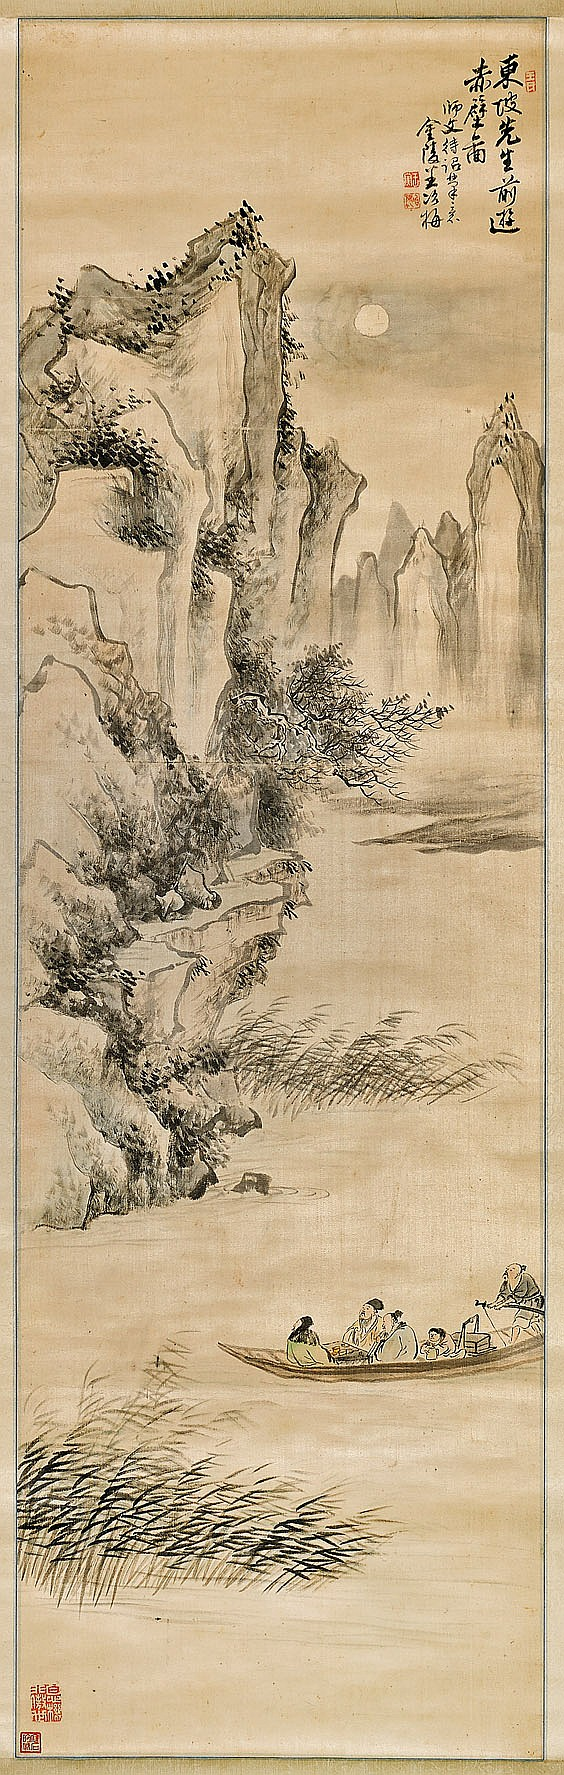 CHINESE LANDSCAPE PAINTING BY WANG YIN